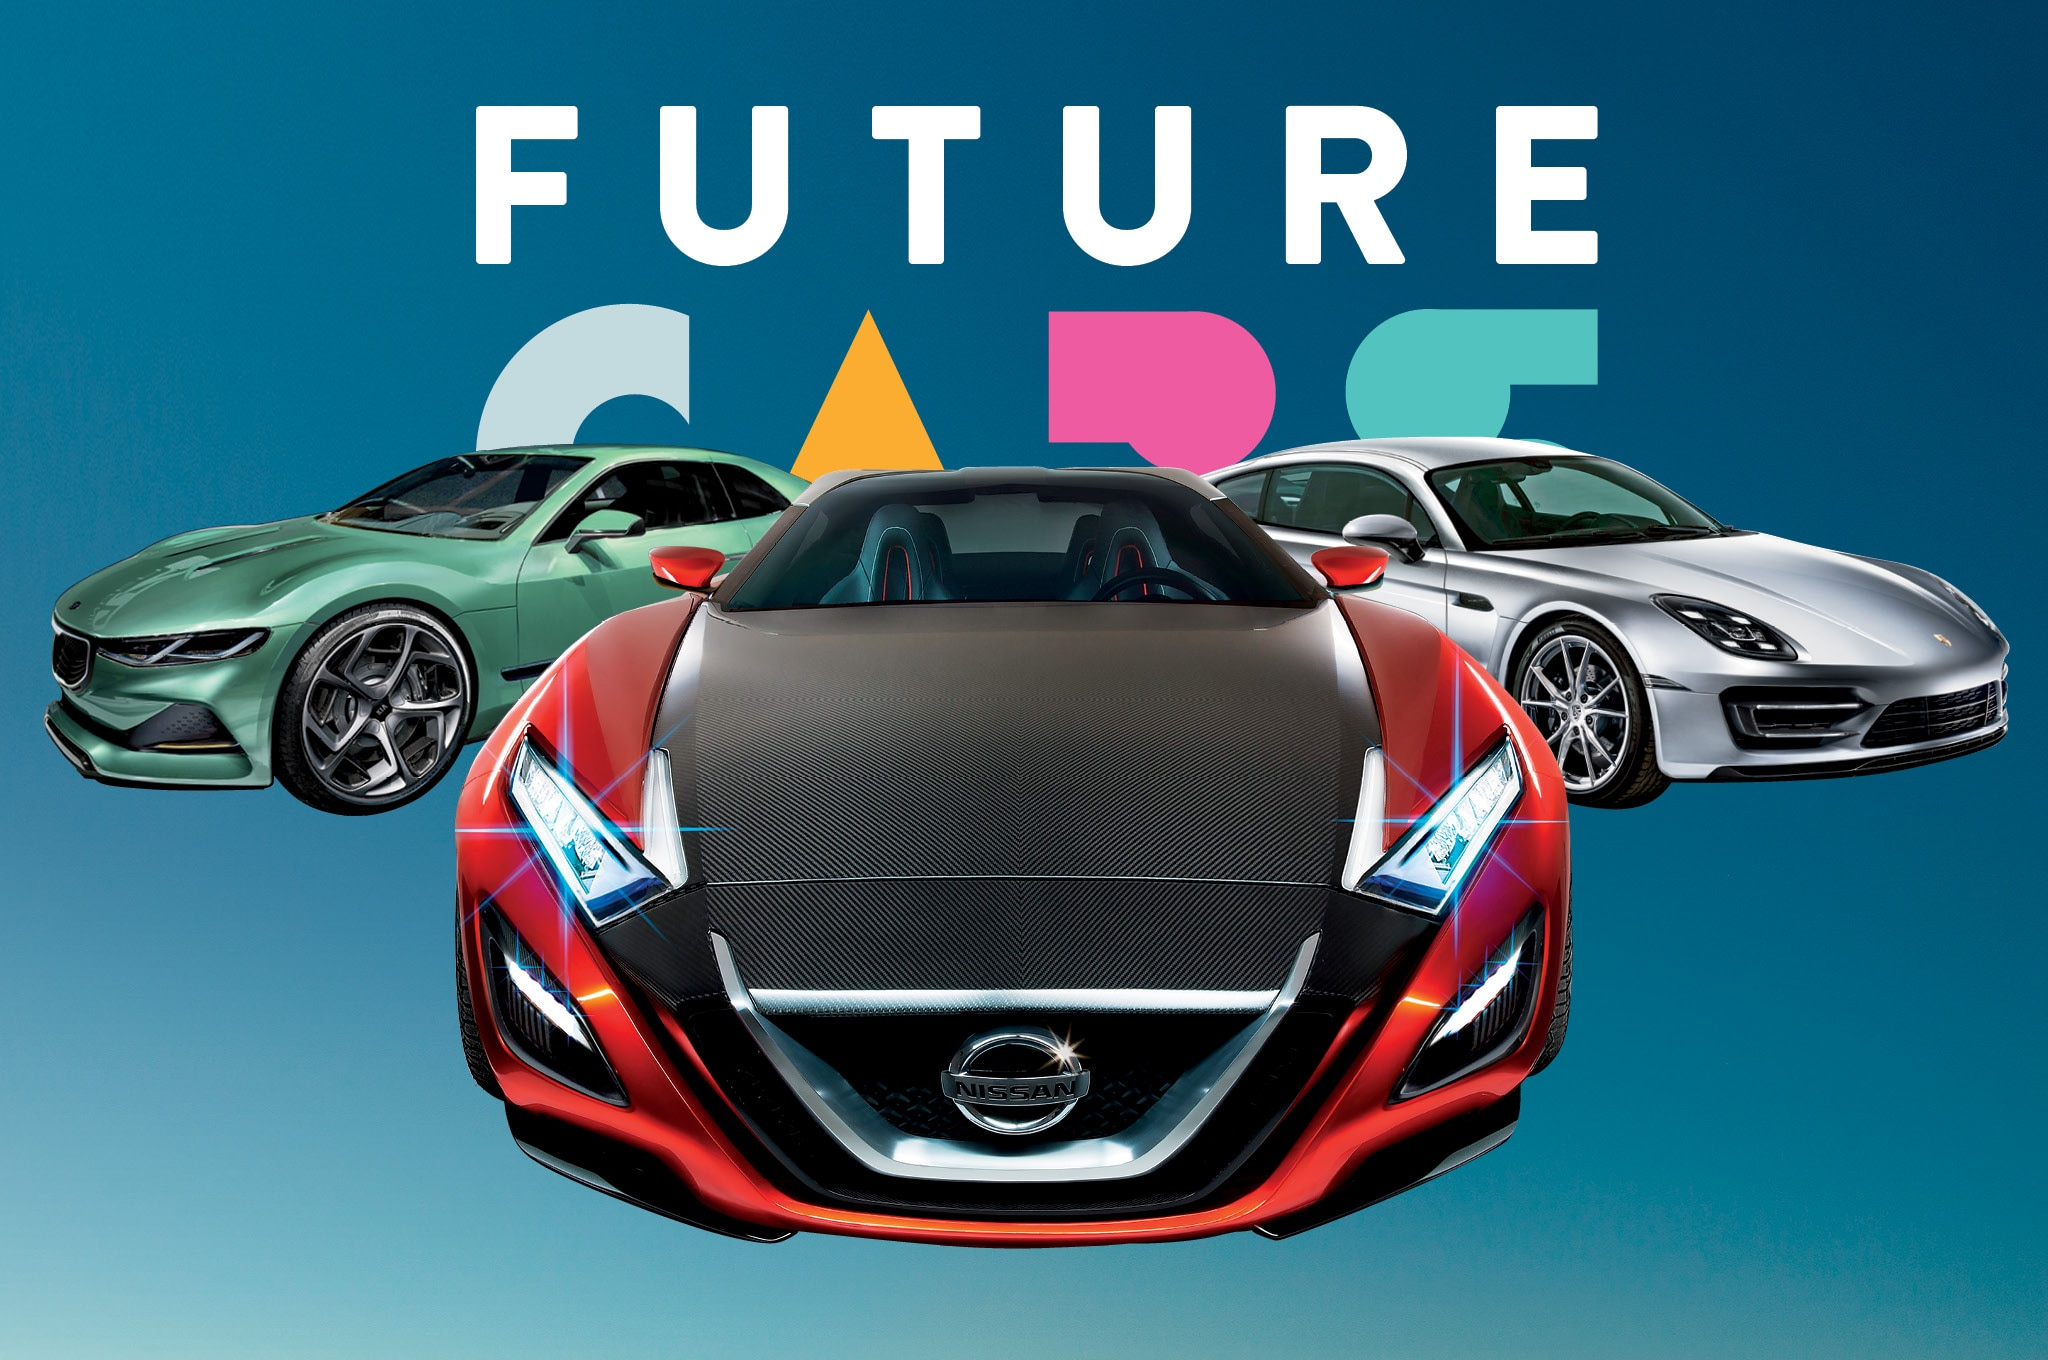 Future Cars You Wont Want To Miss Automobile Magazine - Future cars